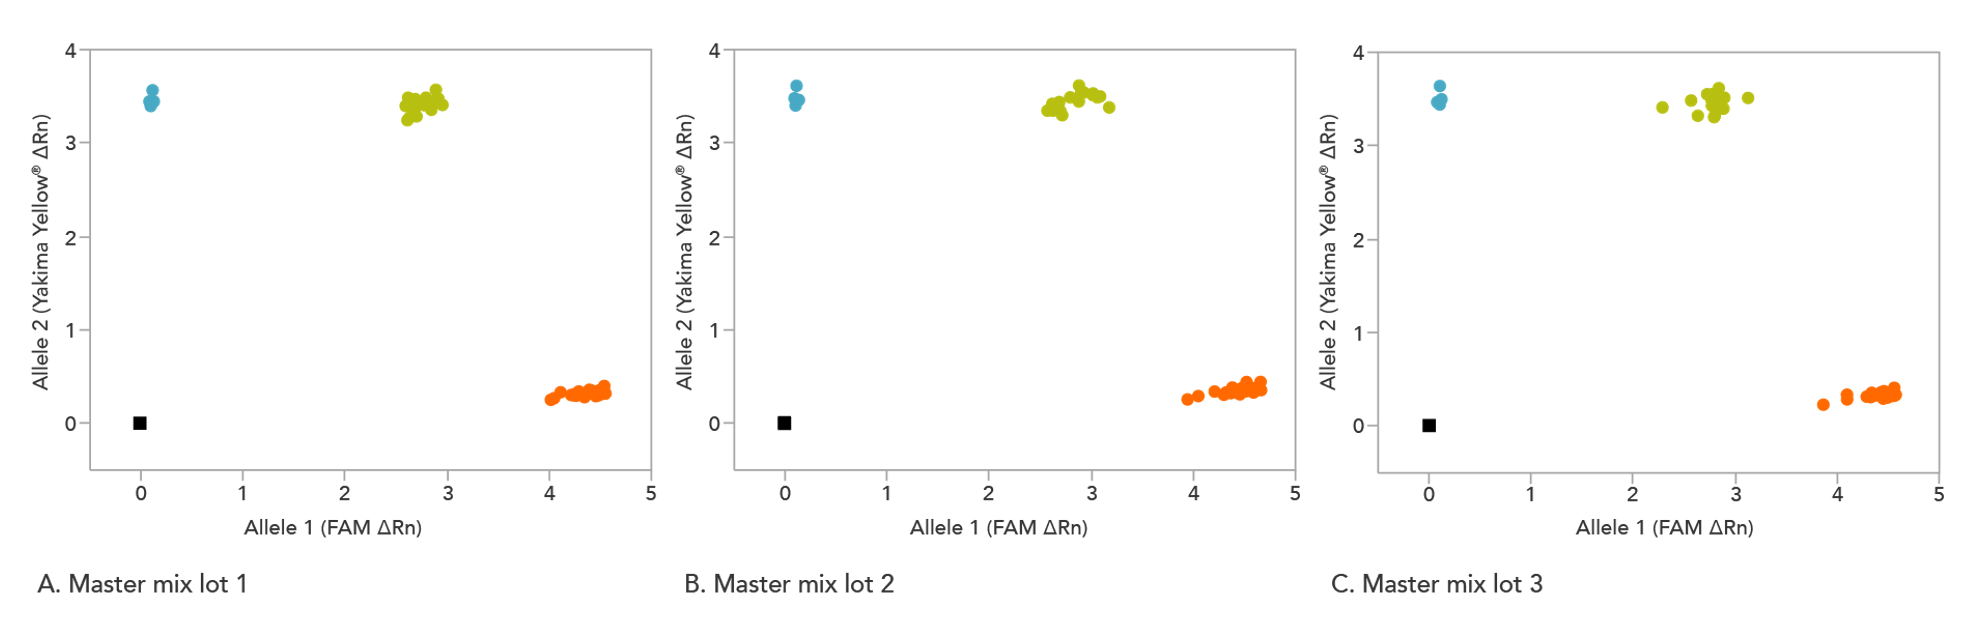 rhAmp Genotyping Master Mix and Reporter Mixes